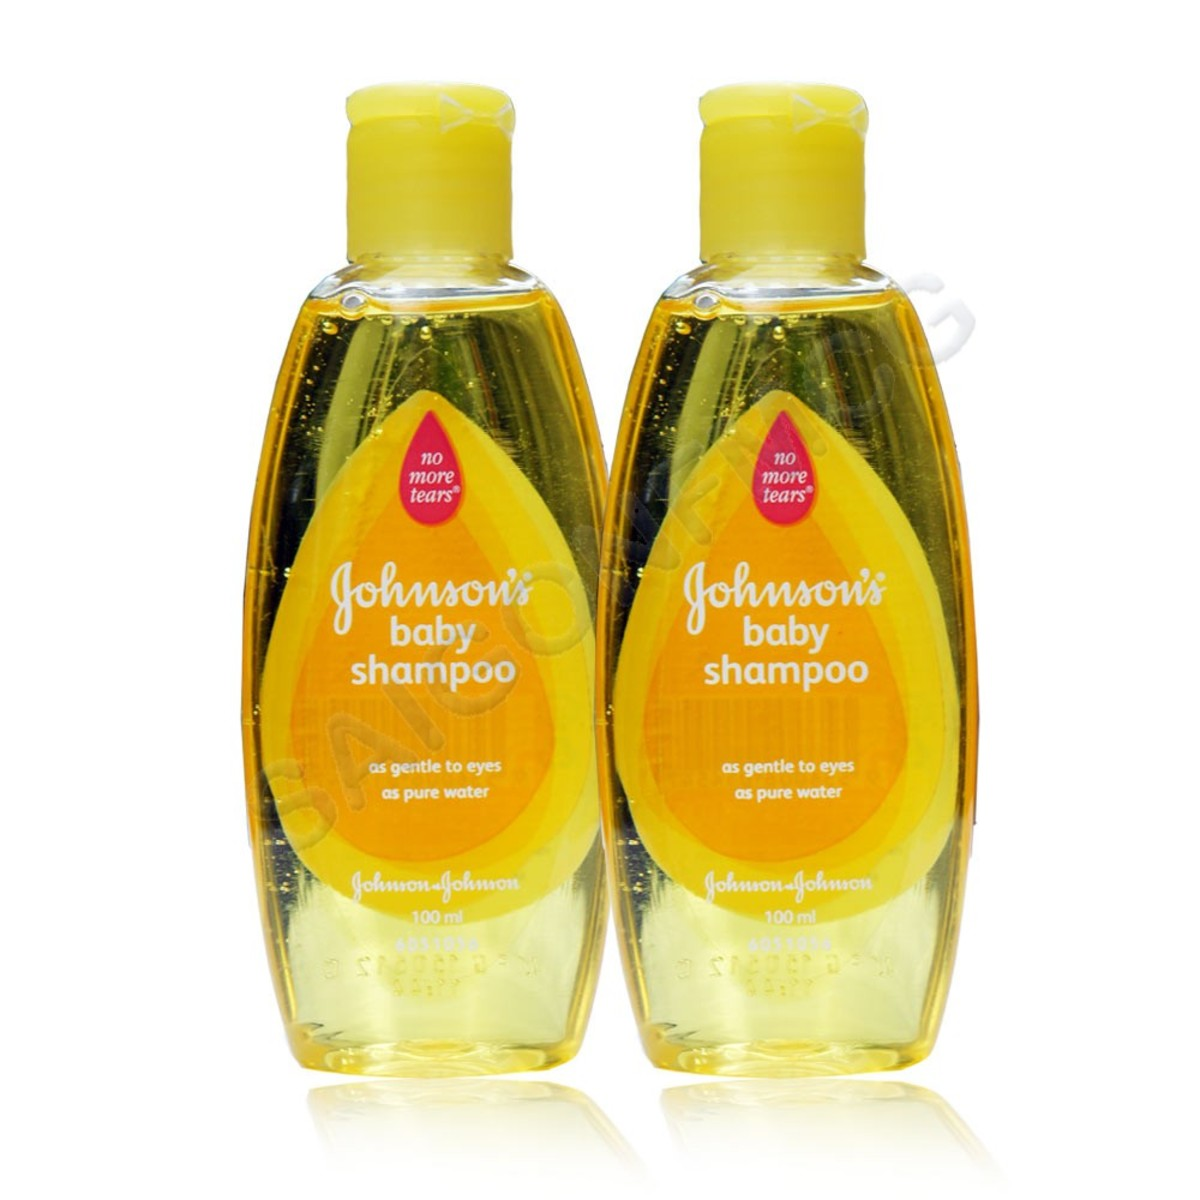 Ingredients in Johnson & Johnson baby shampoo have been shown to cause cancer.